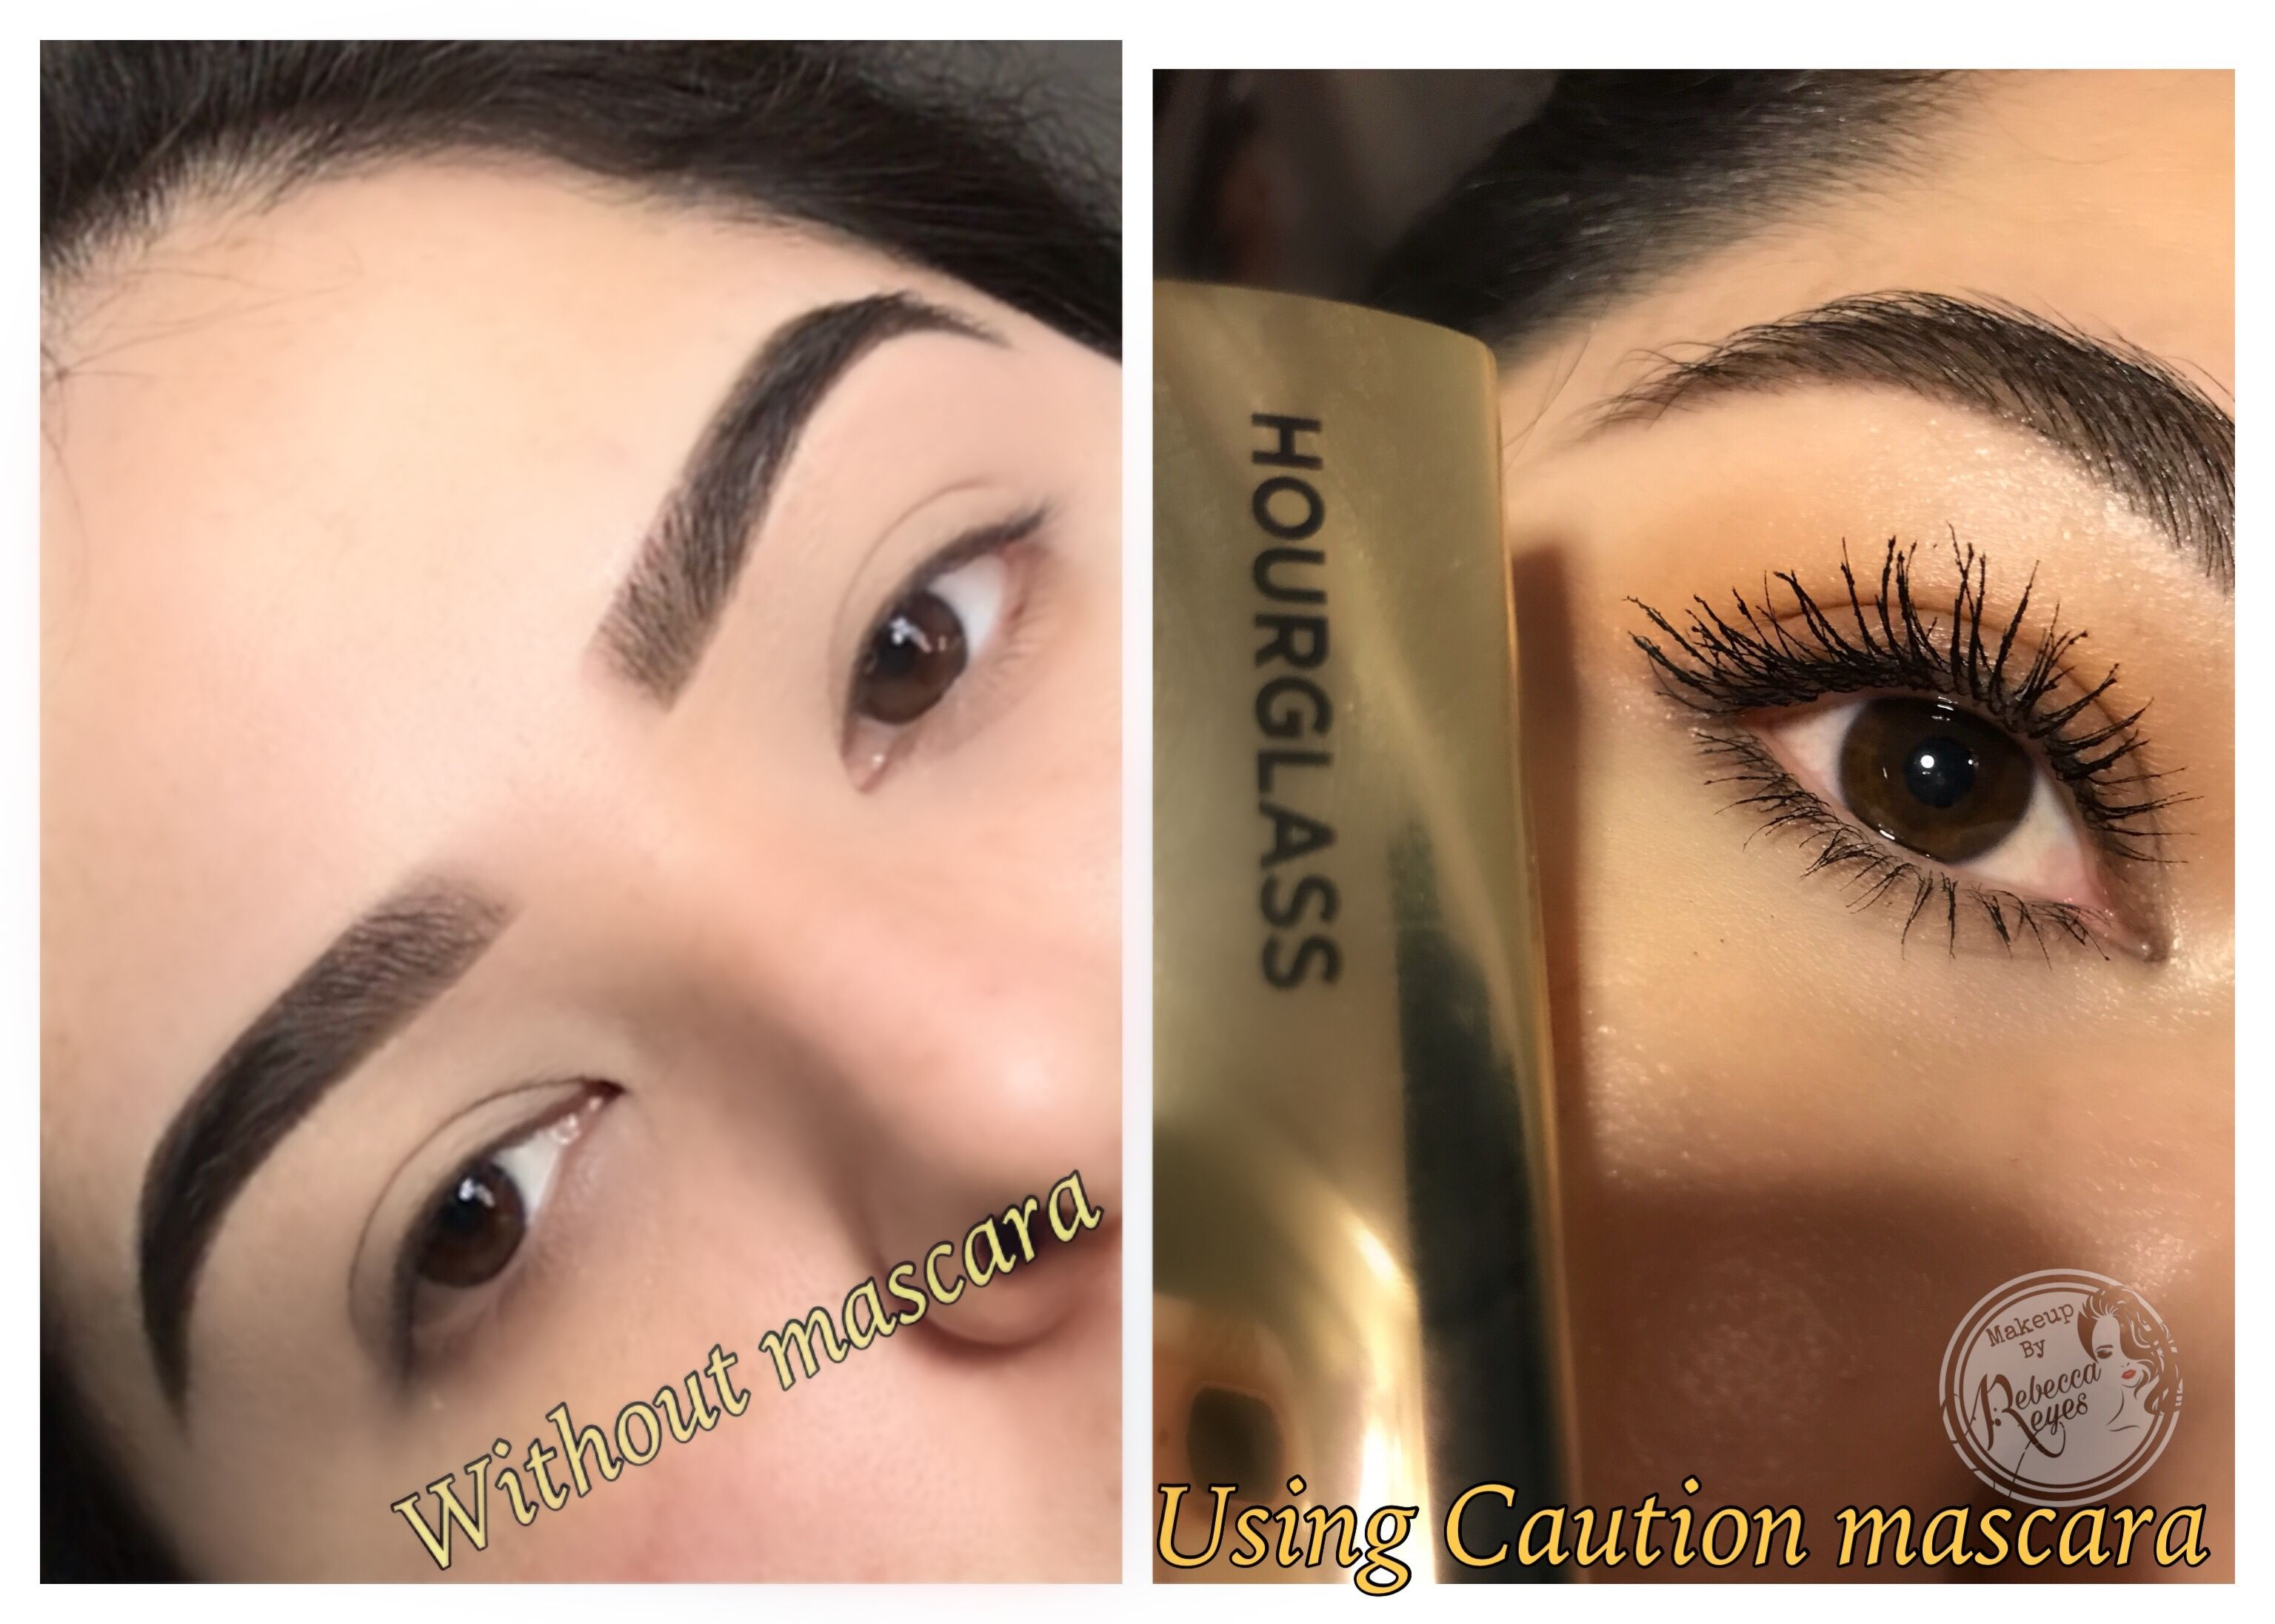 0250a0d32ae Hourglass Caution Mascara: Extreme Lash Mascara Fuller, longer and thicker  lashes! #complimentary #voxbox